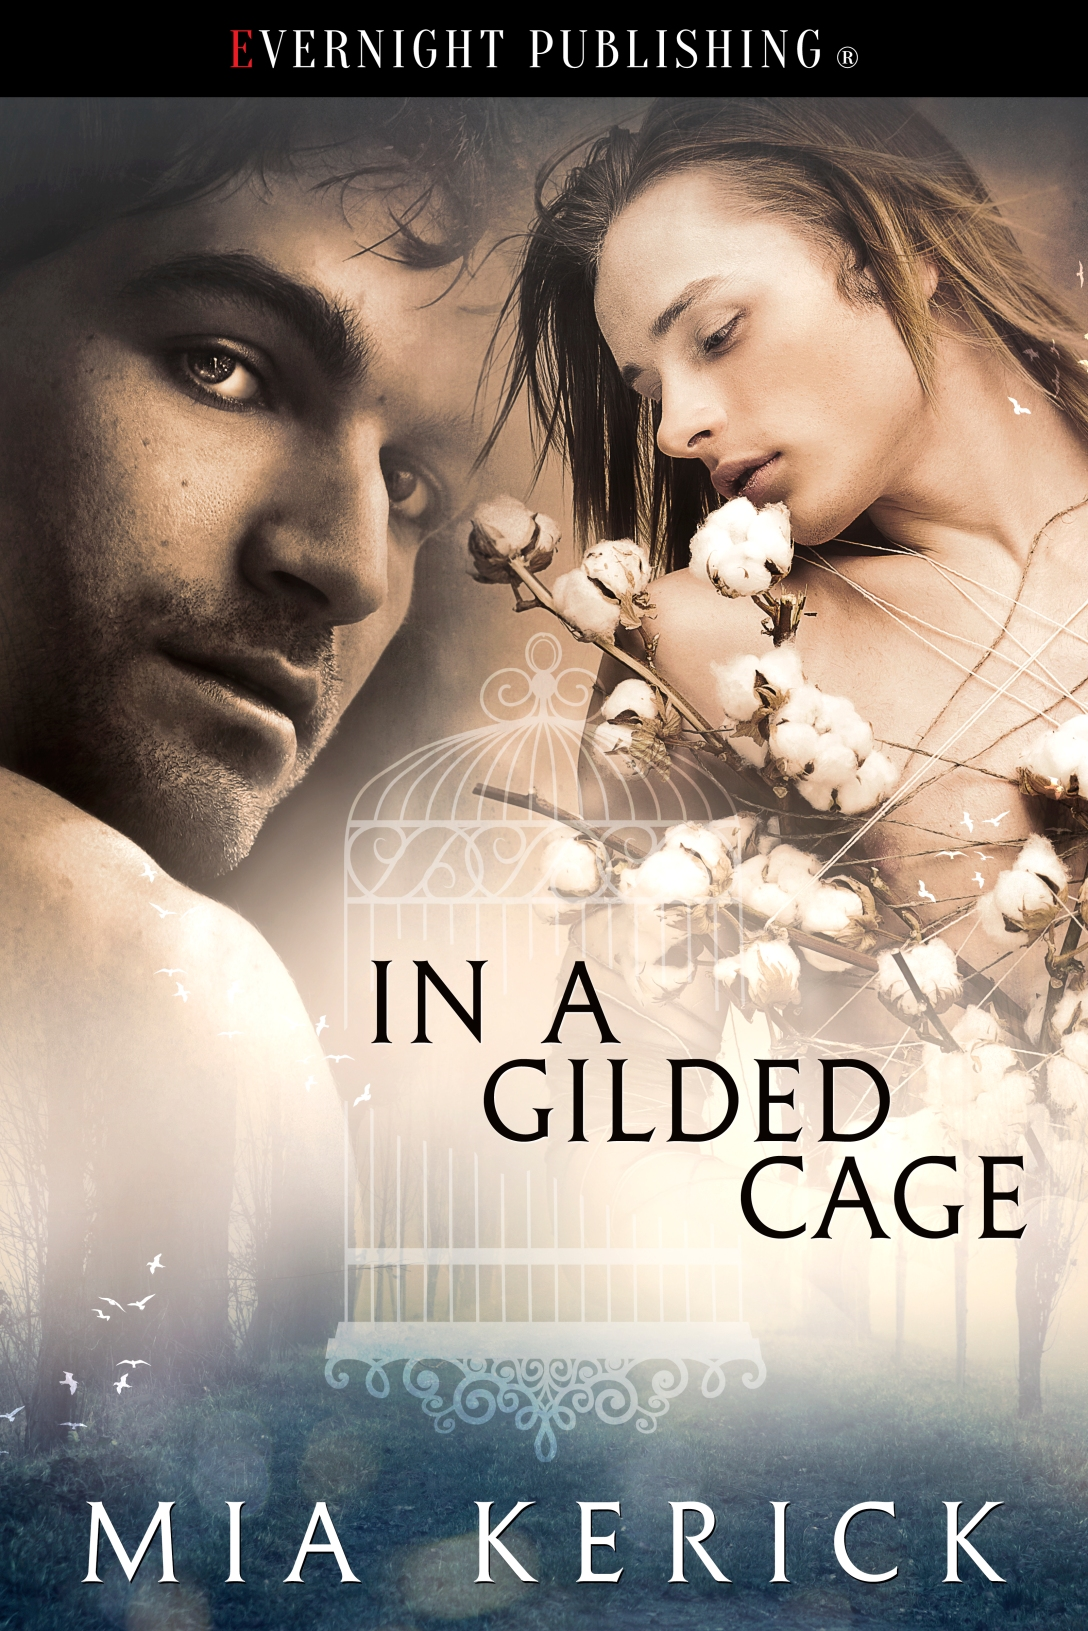 cover-in-a-guilded-cage-evernightpublishing-2016-ver2